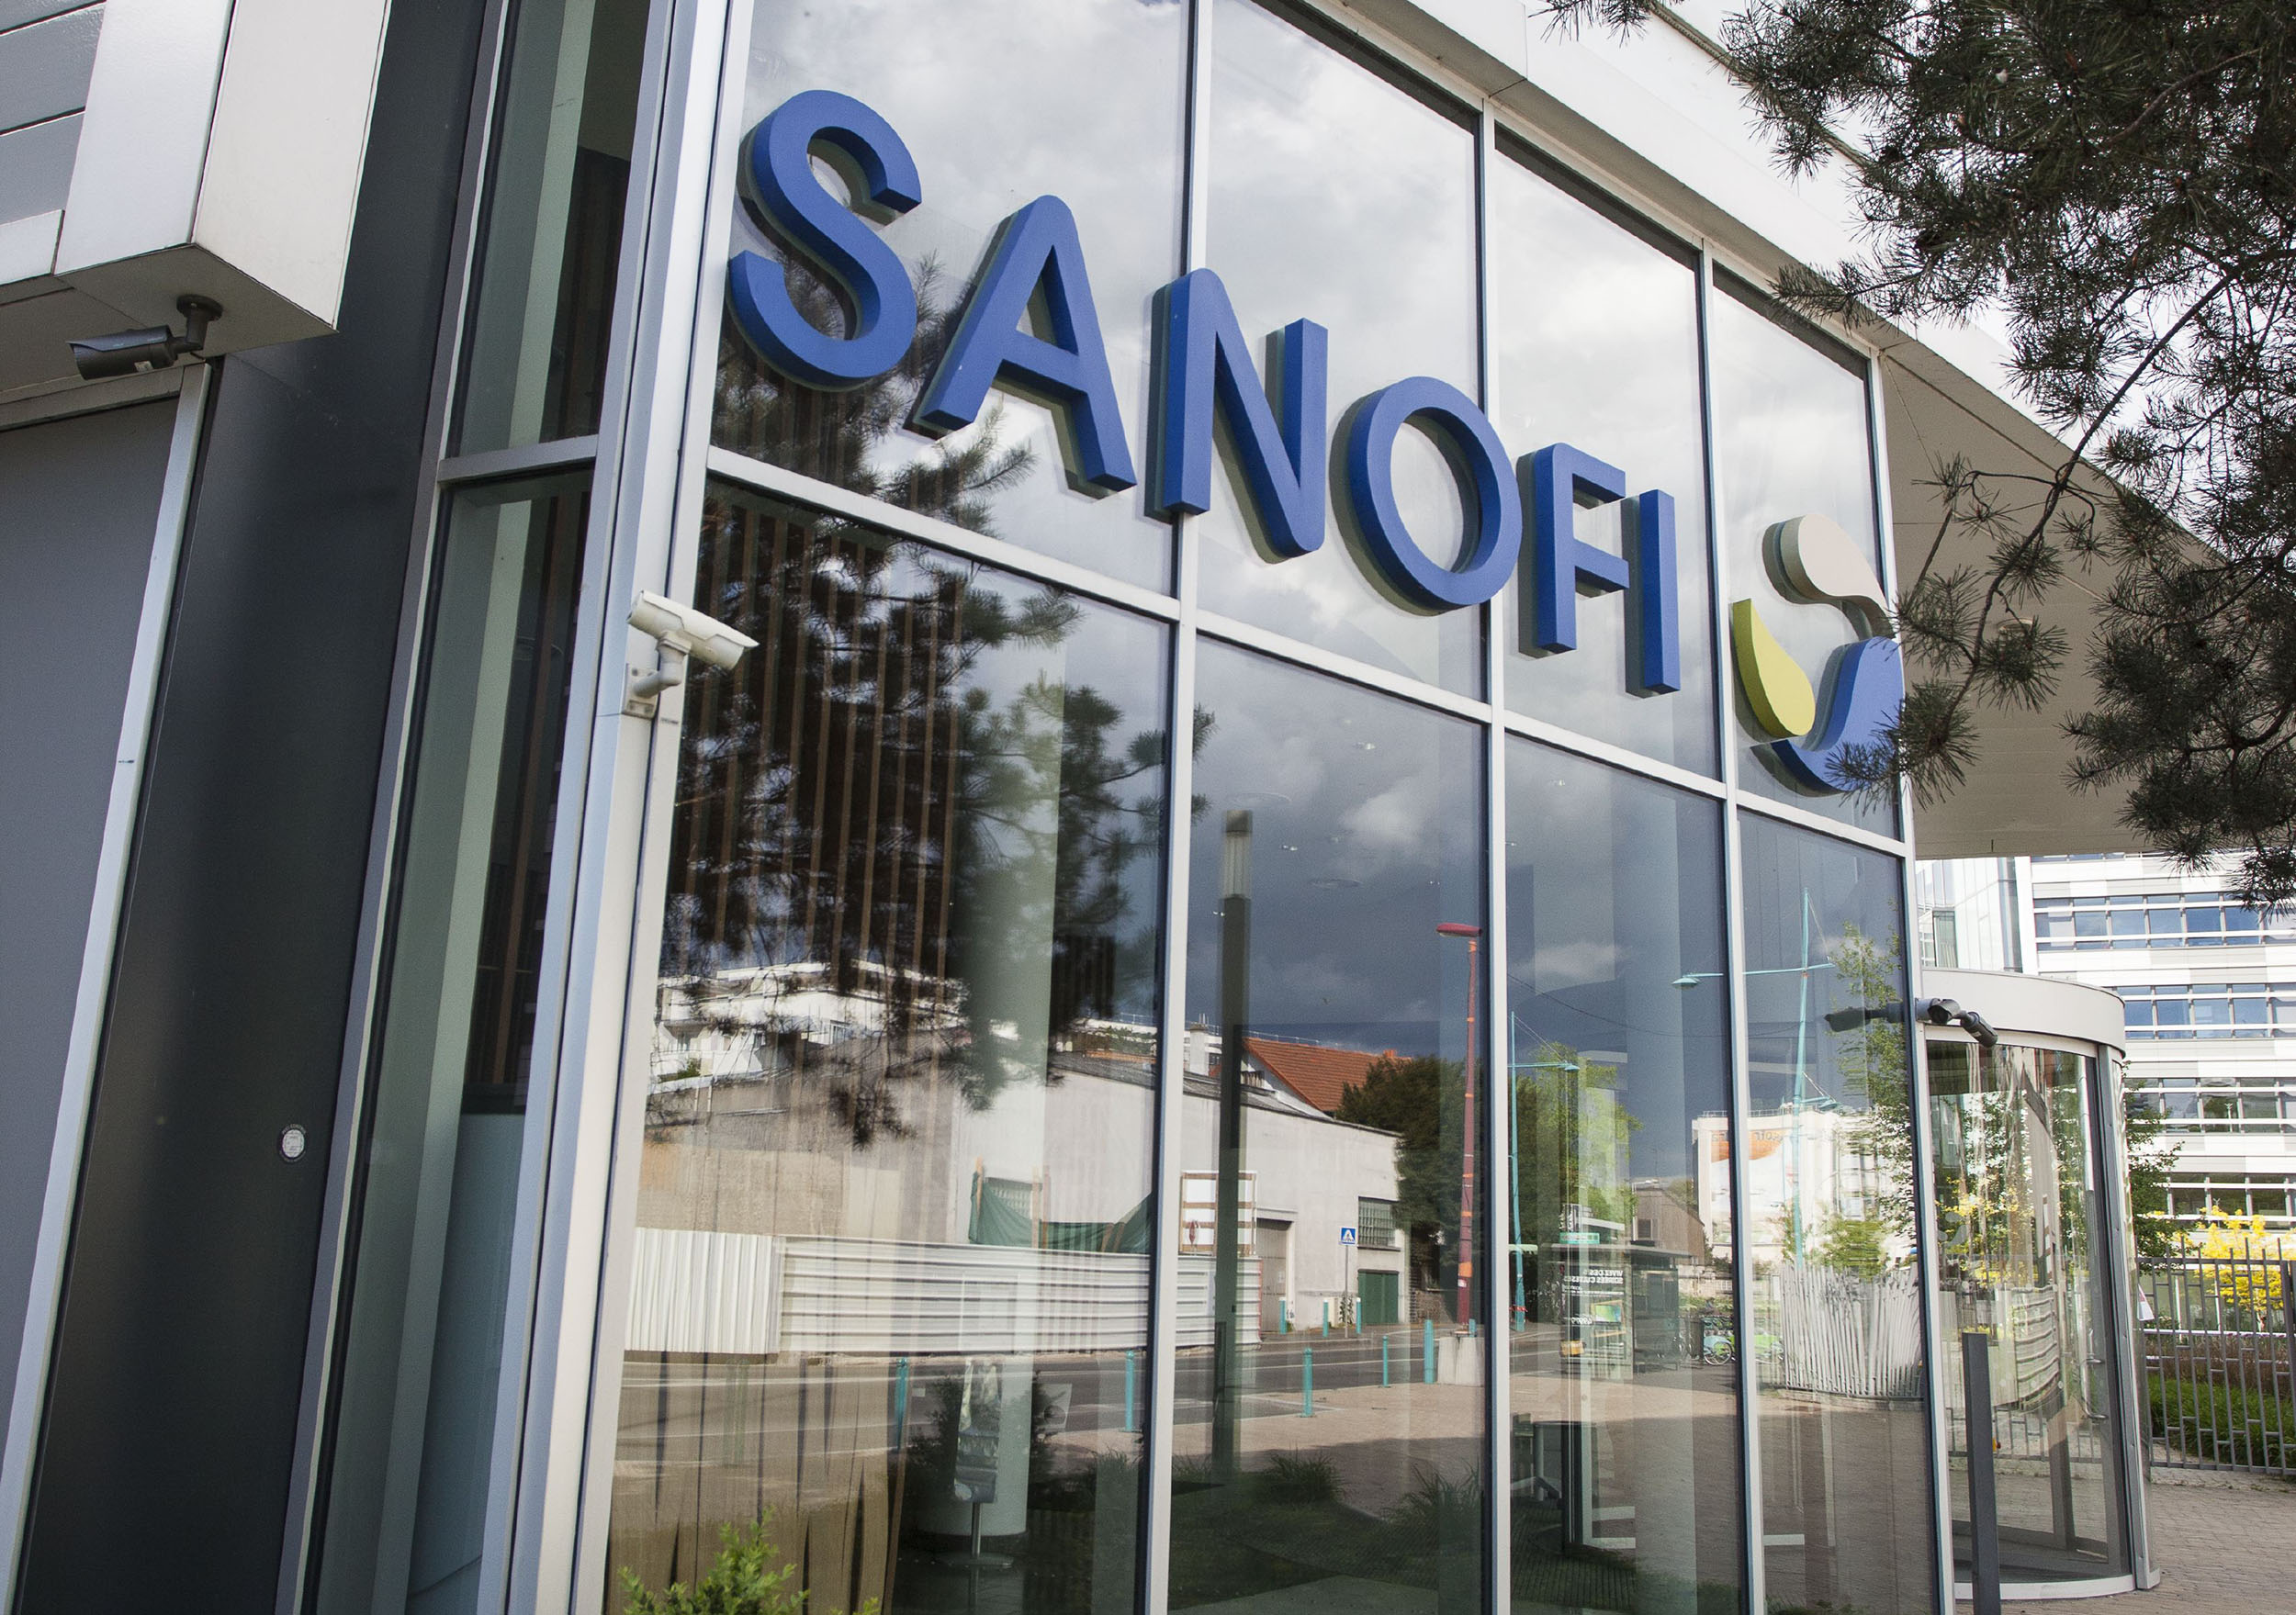 Sanofi headquarters in Gentilly, France.